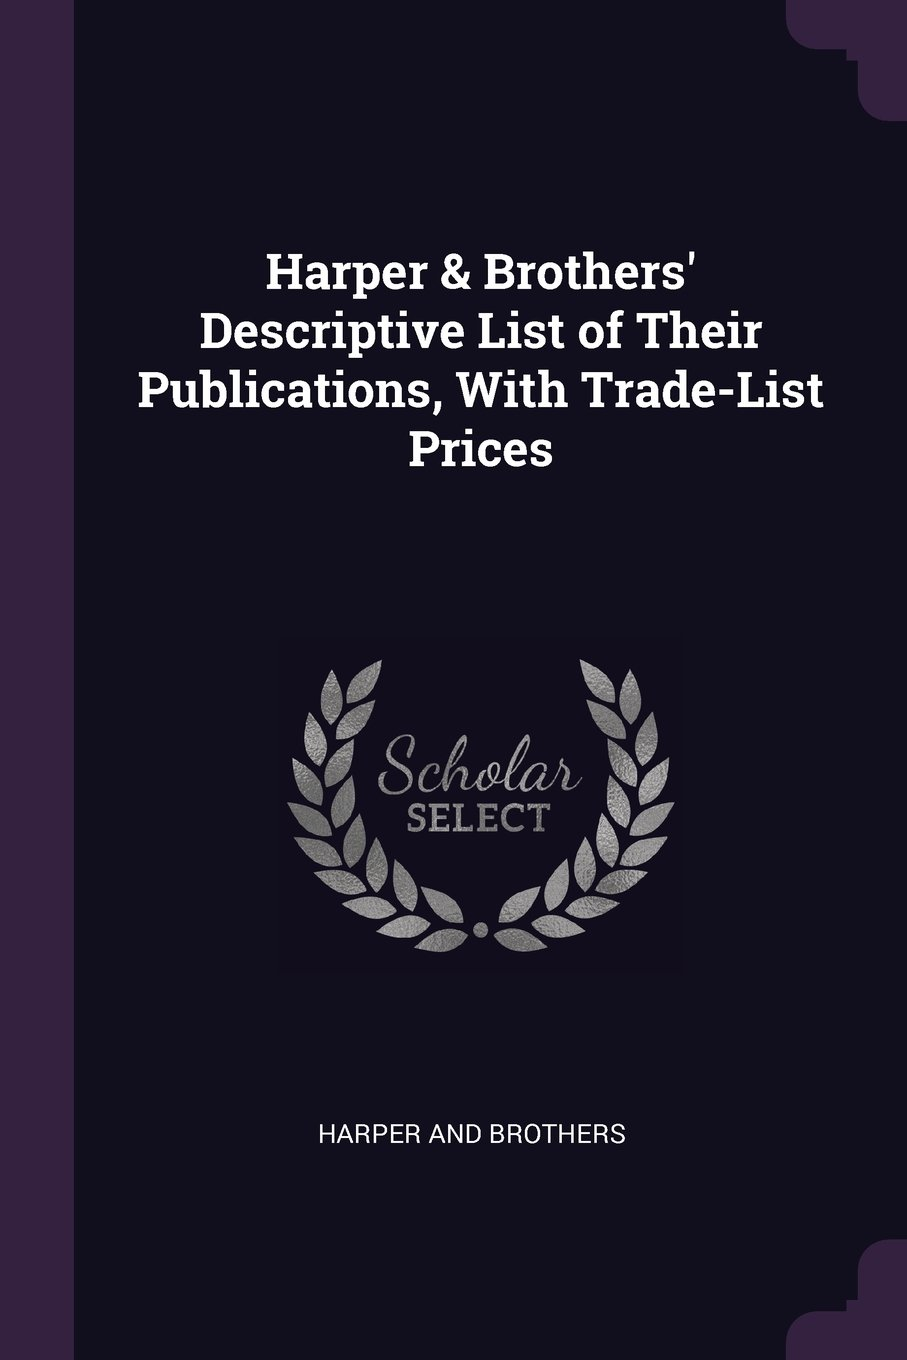 Harper & Brothers' Descriptive List of Their Publications, with Trade-List Prices pdf